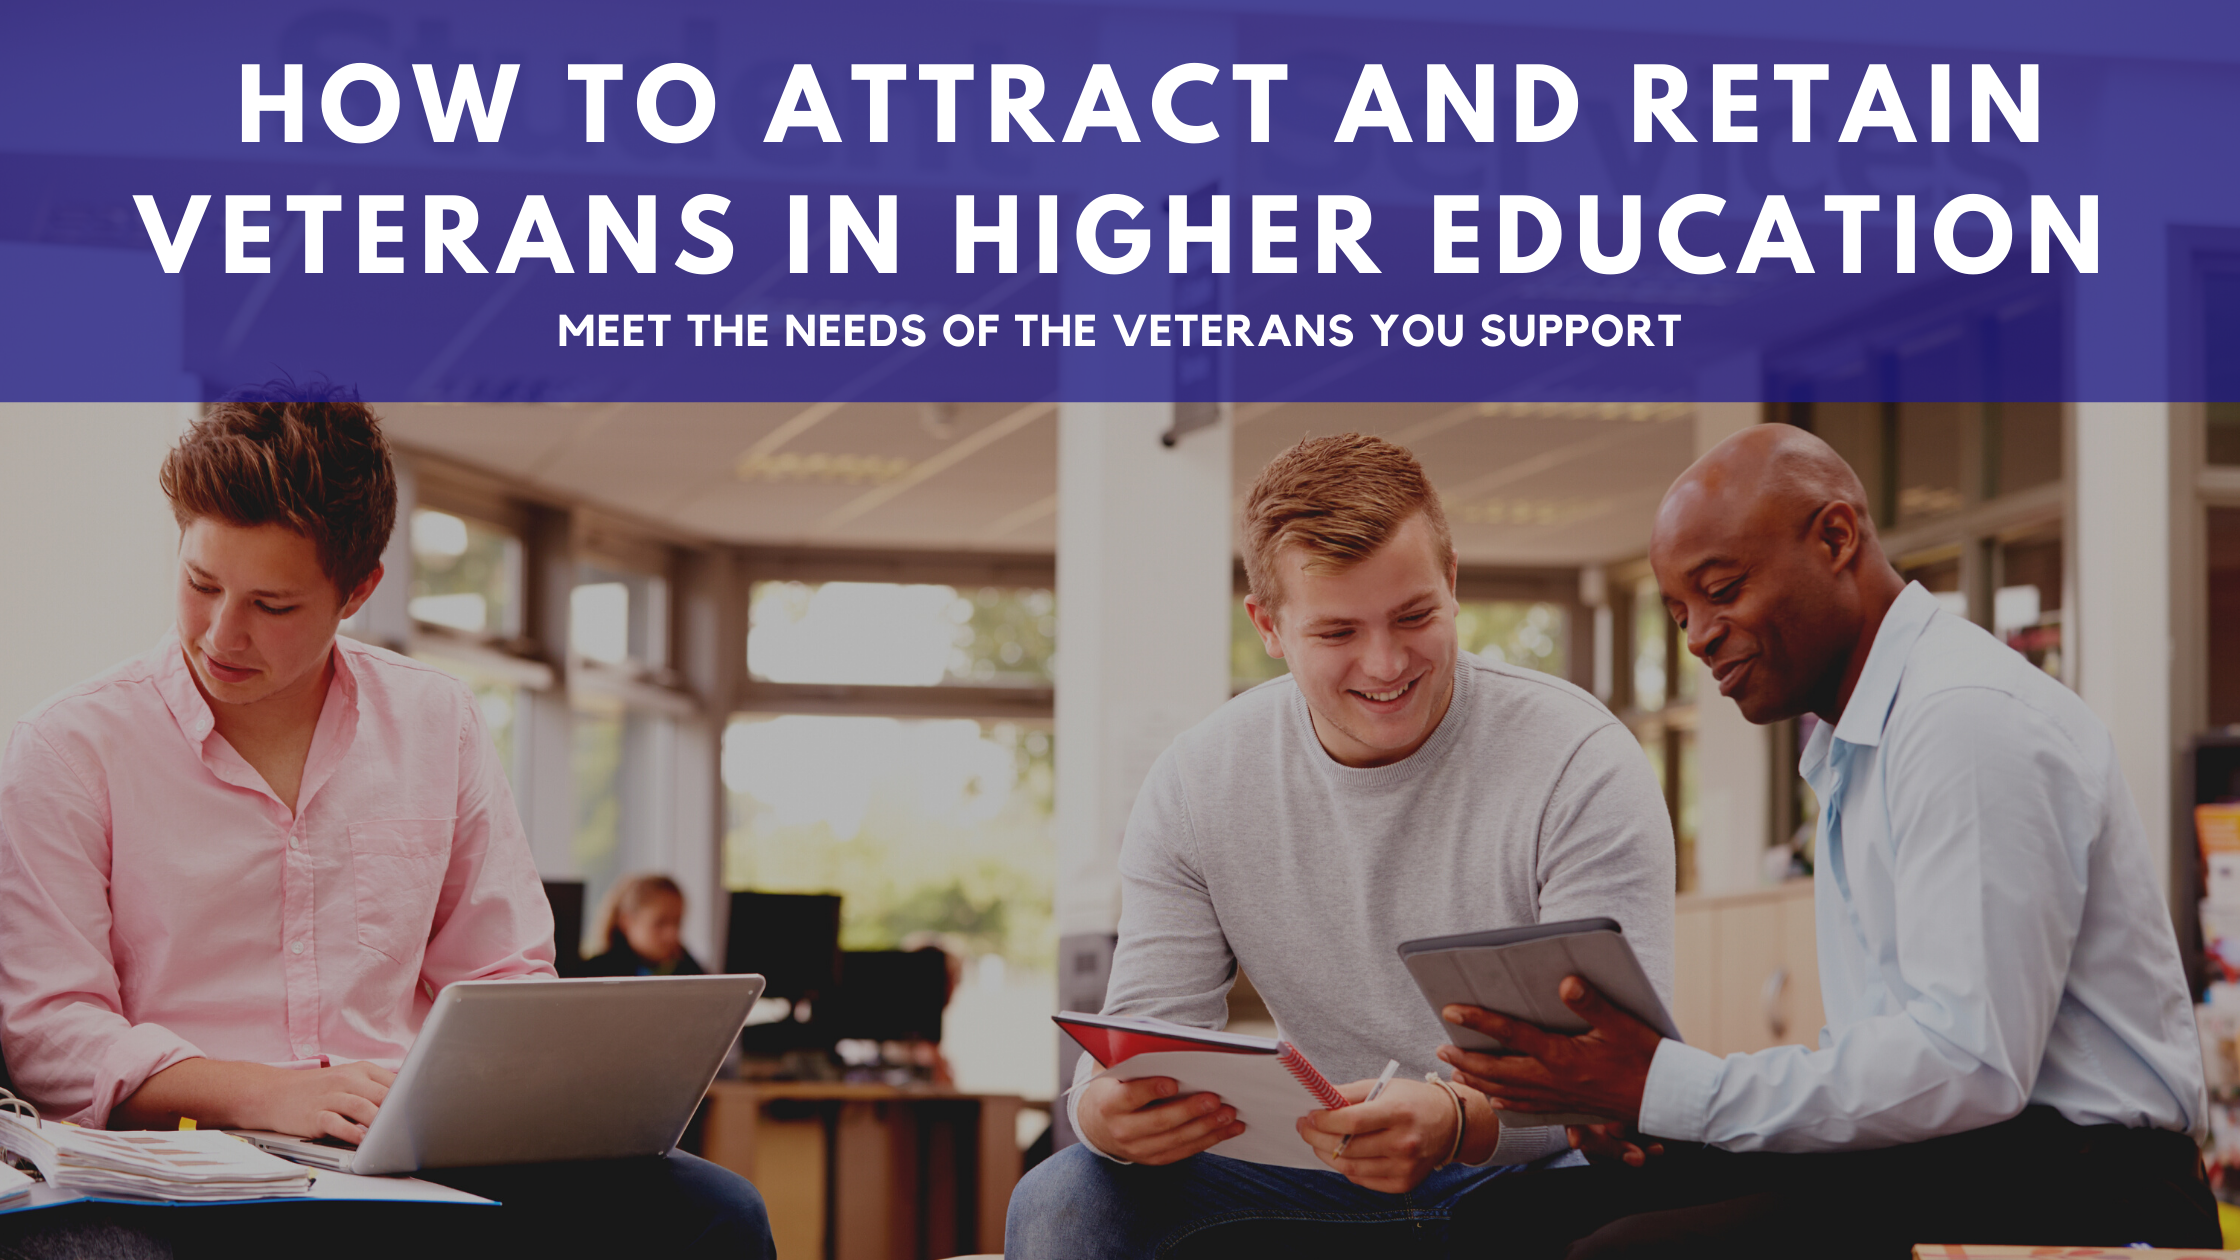 Attracting and Retaining Veterans in Higher Education